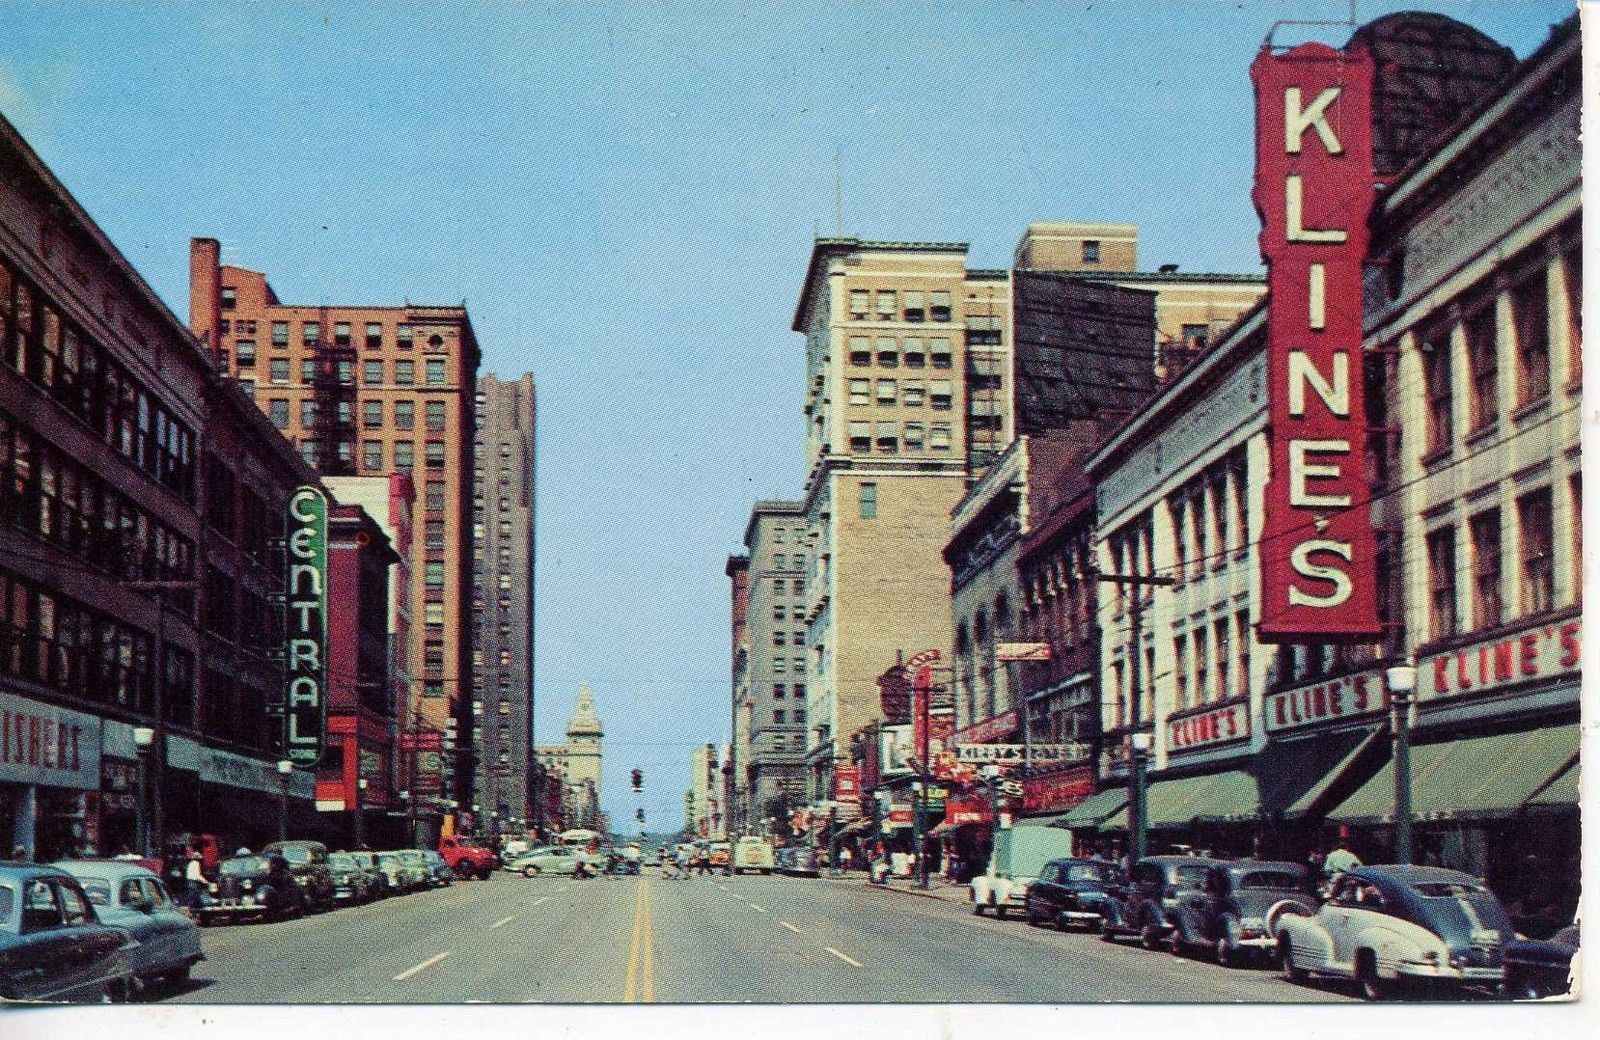 YOUNGSTOWN OHIO 1940's CARS DOWNTOWN STREET SCENE VINTAGE